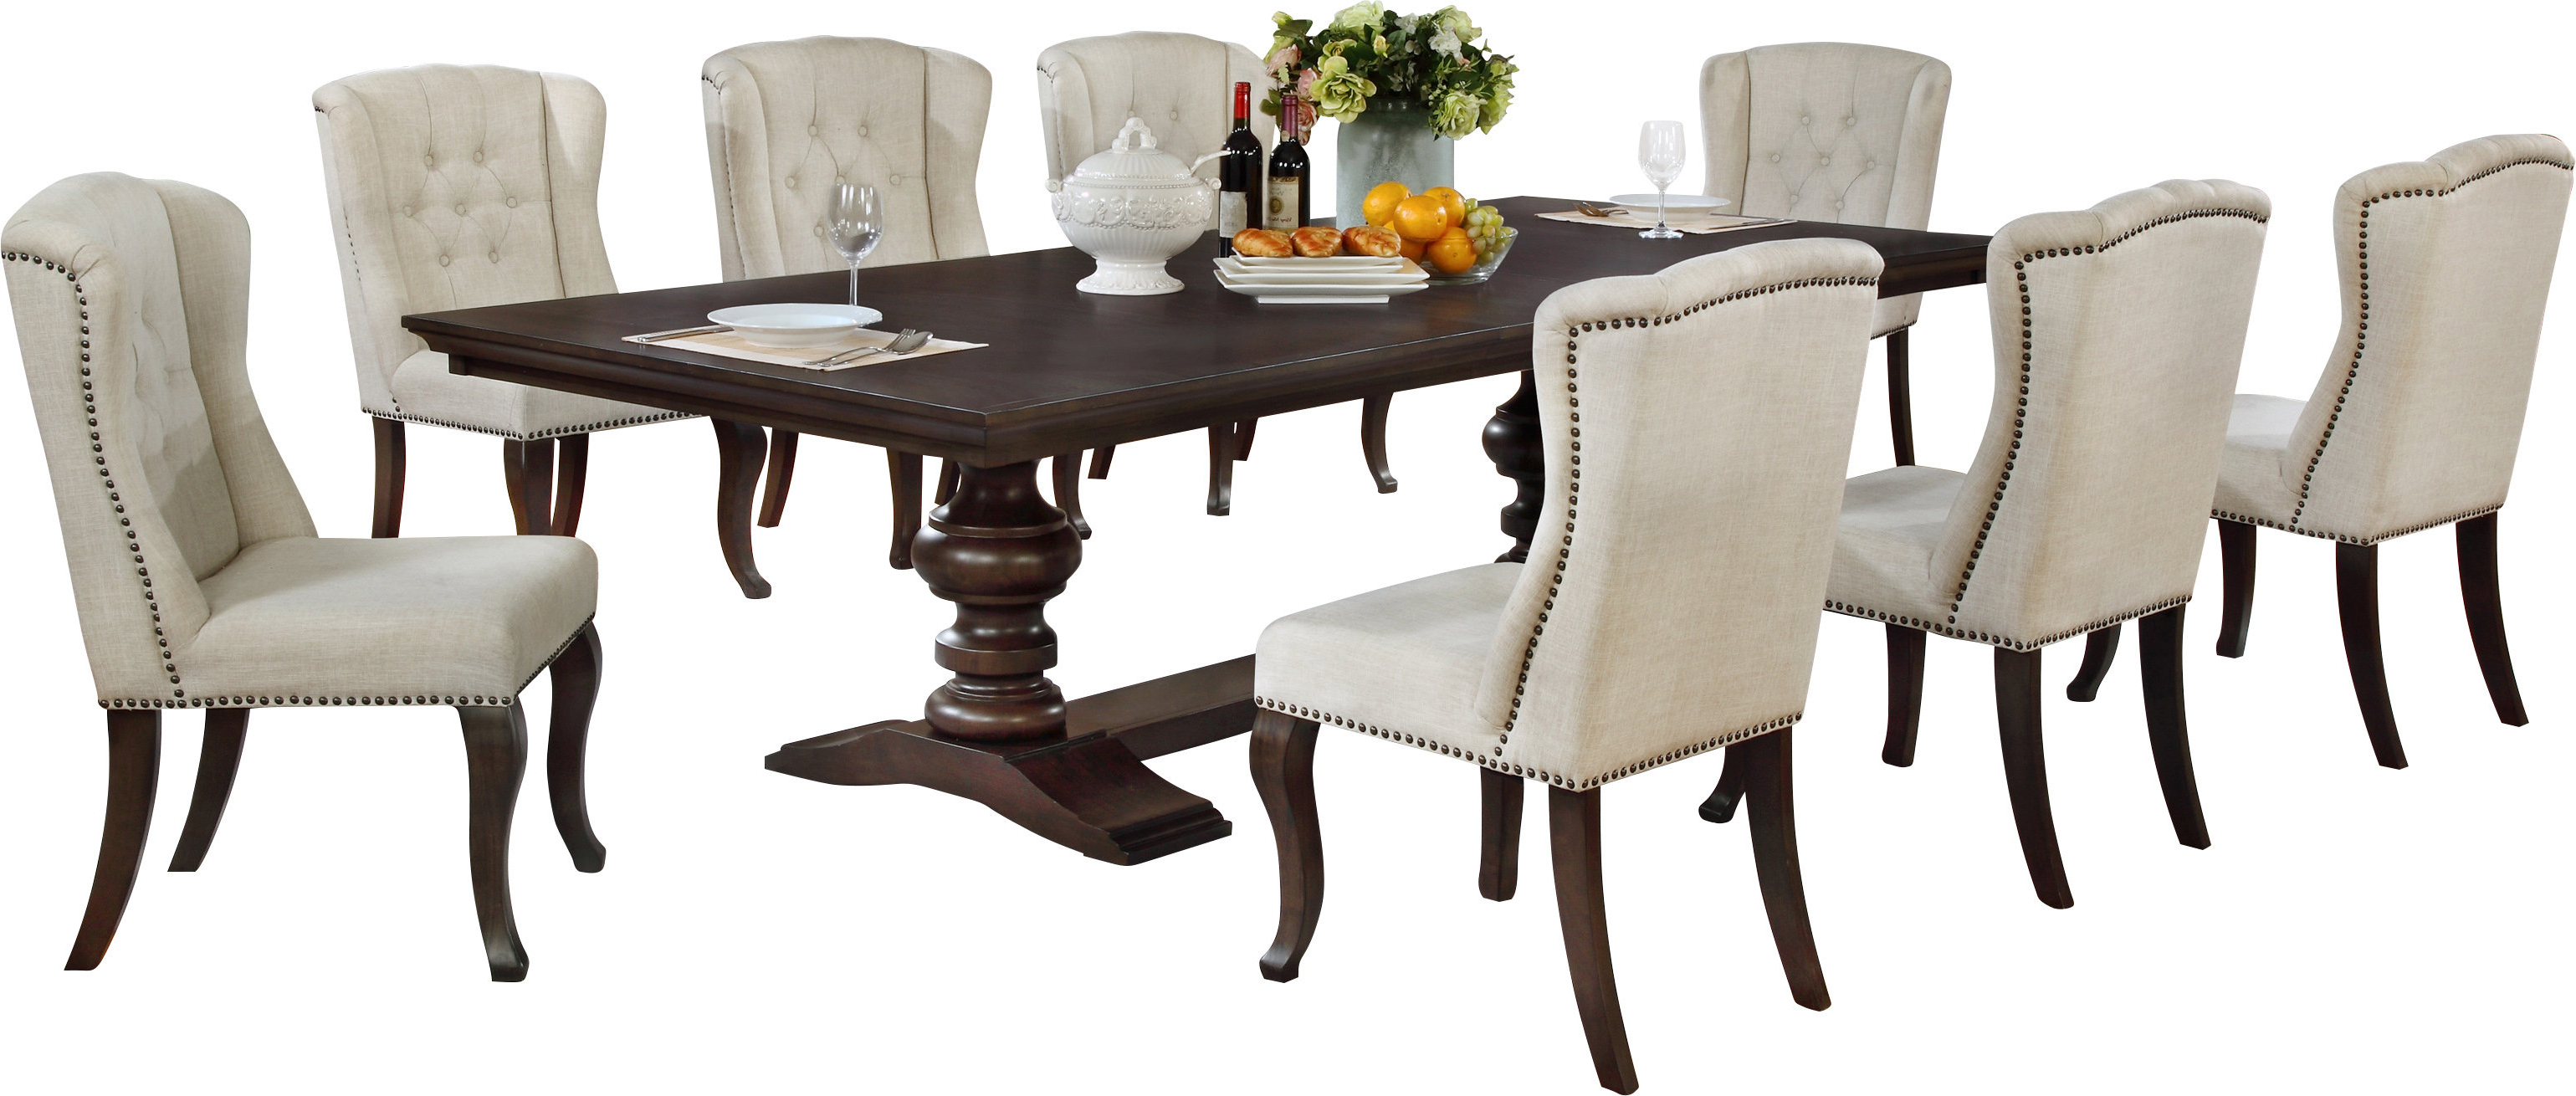 Canora Grey Rolf 9 Piece Extendable Dining Set Inside Famous Nutter 3 Piece Dining Sets (View 4 of 20)